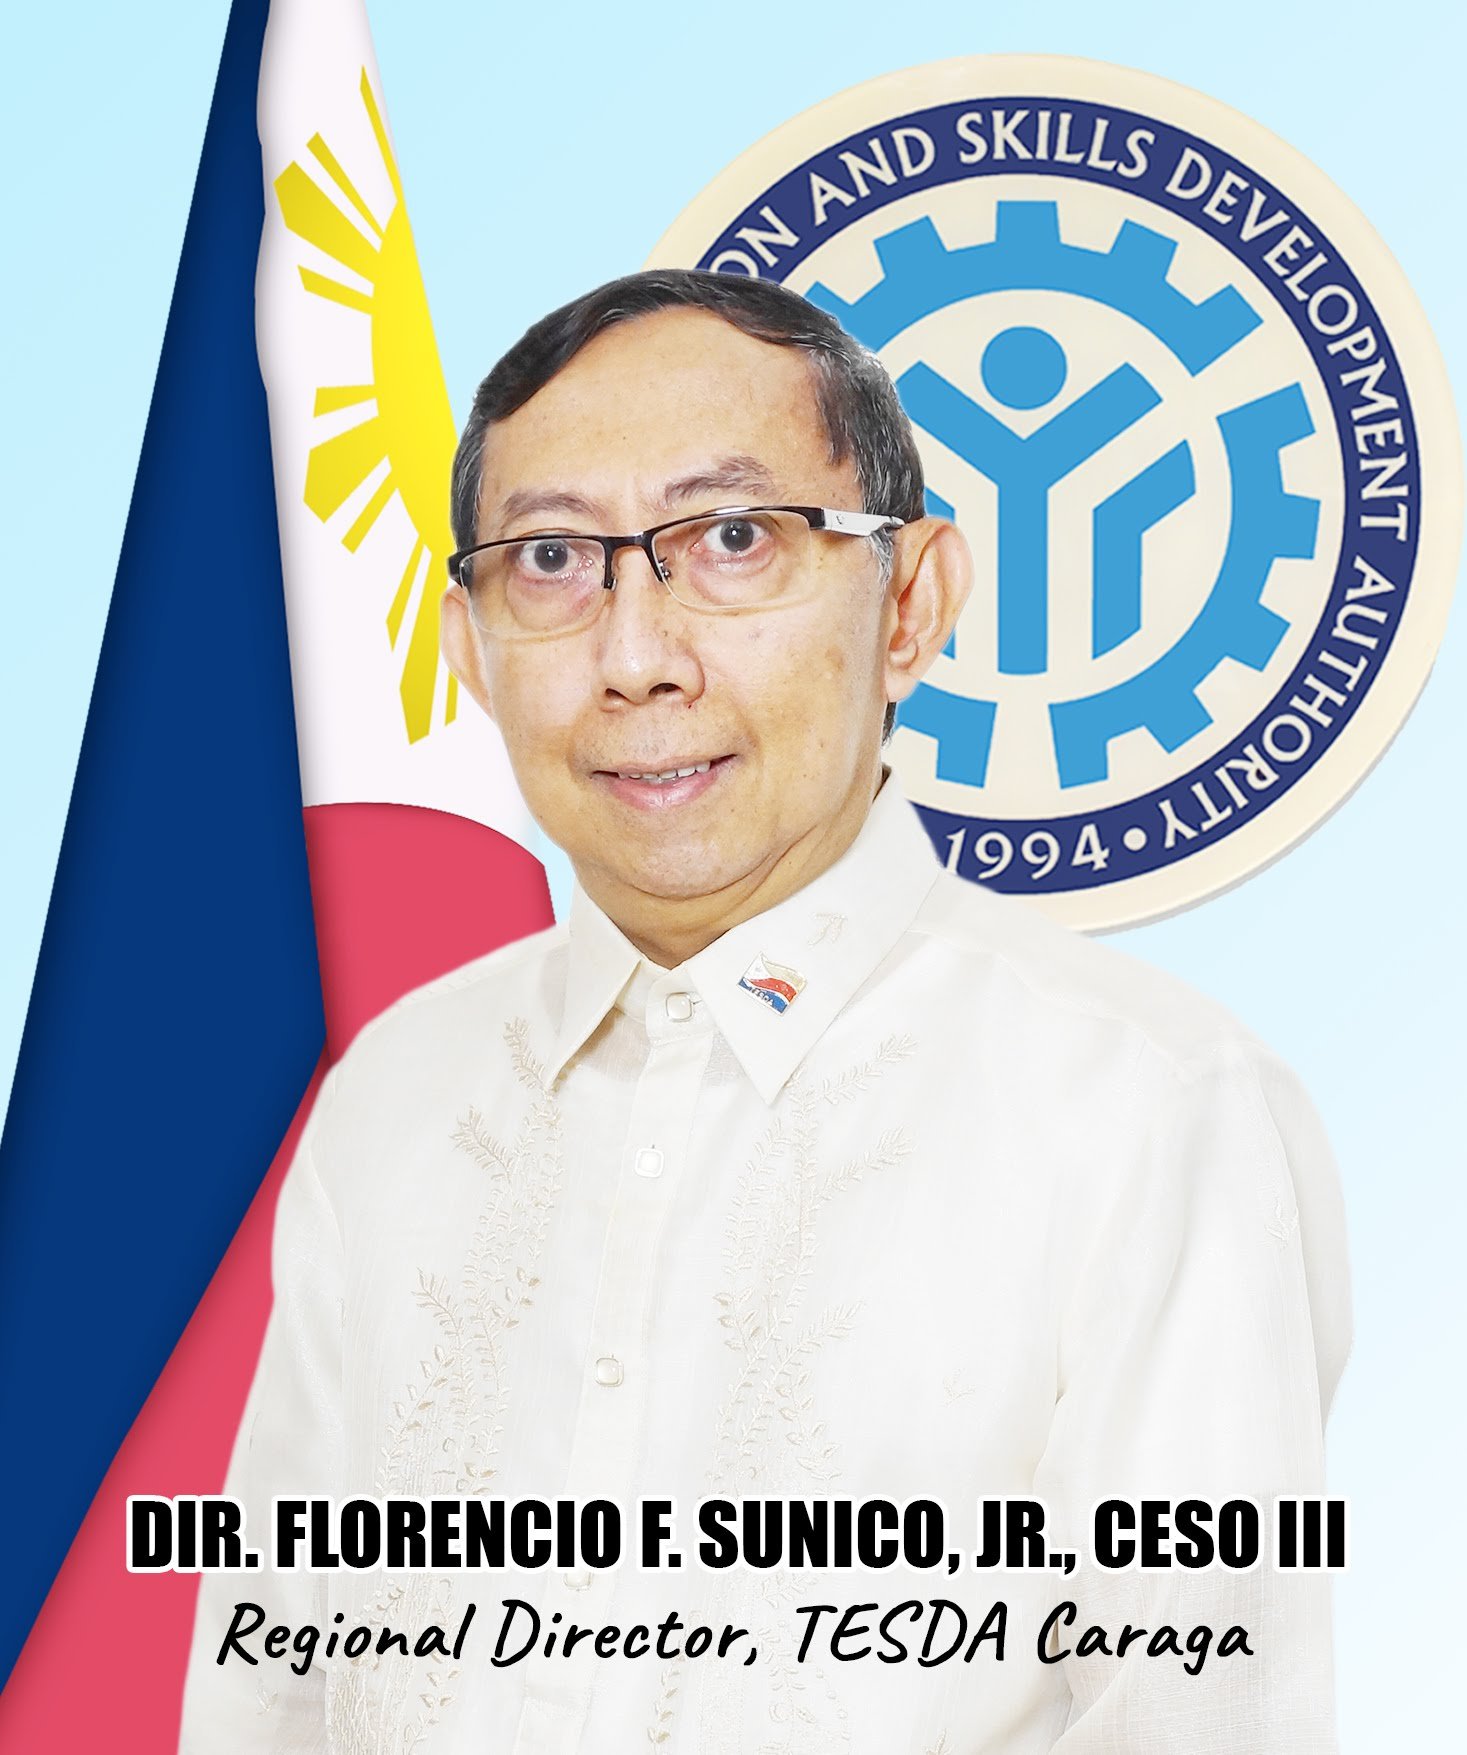 https://sites.google.com/a/tesda.gov.ph/caragaxiii/project-definition/director-s-messages/dirflorenciofsunicojrcesoiii